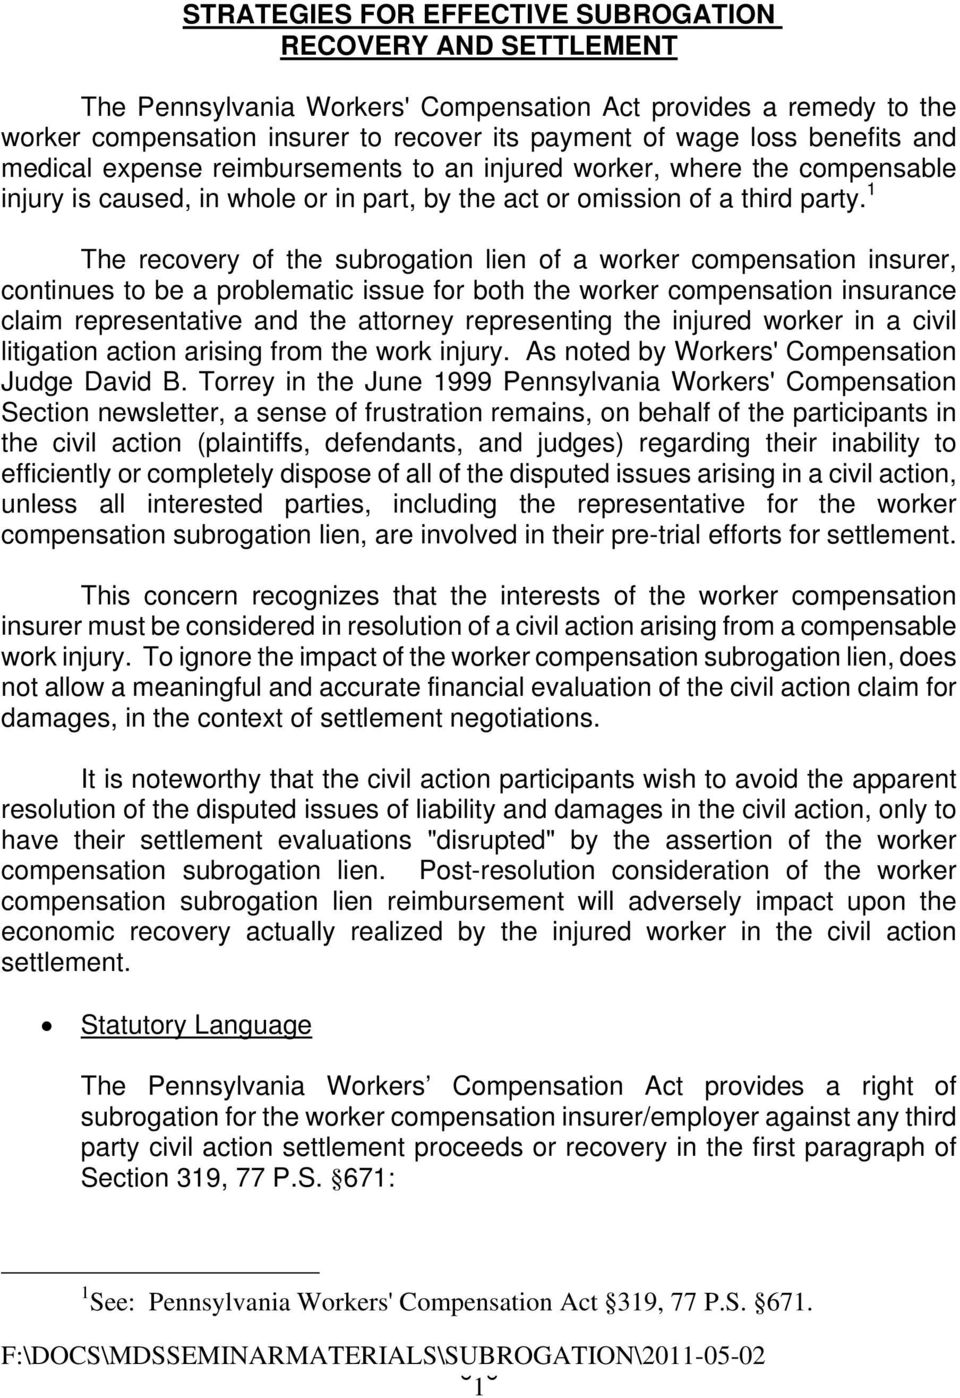 1 The recovery of the subrogation lien of a worker compensation insurer, continues to be a problematic issue for both the worker compensation insurance claim representative and the attorney